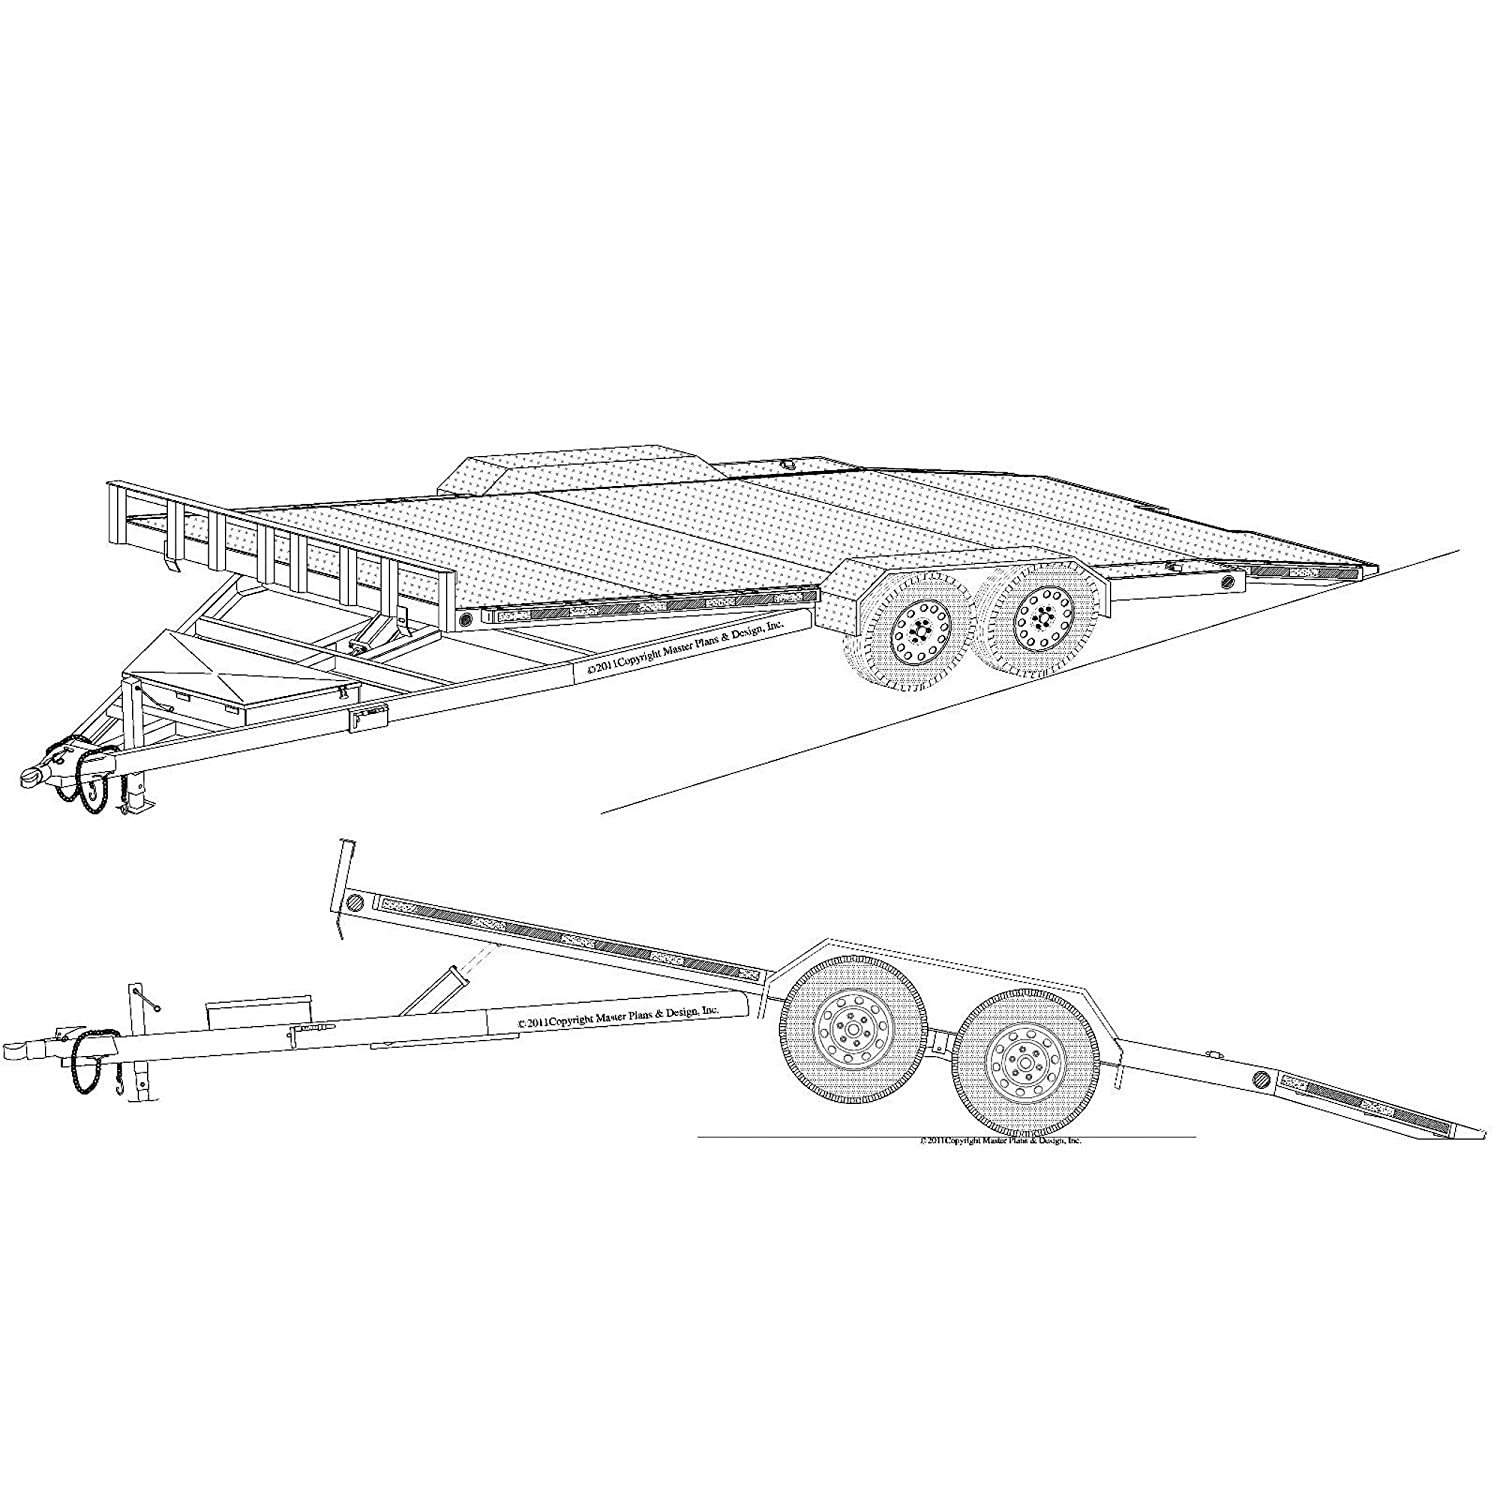 "Amazon.com: 19'x82"" Hydraulic Car Carrier Trailer Plans Blueprints, Model  18HT: Automotive"